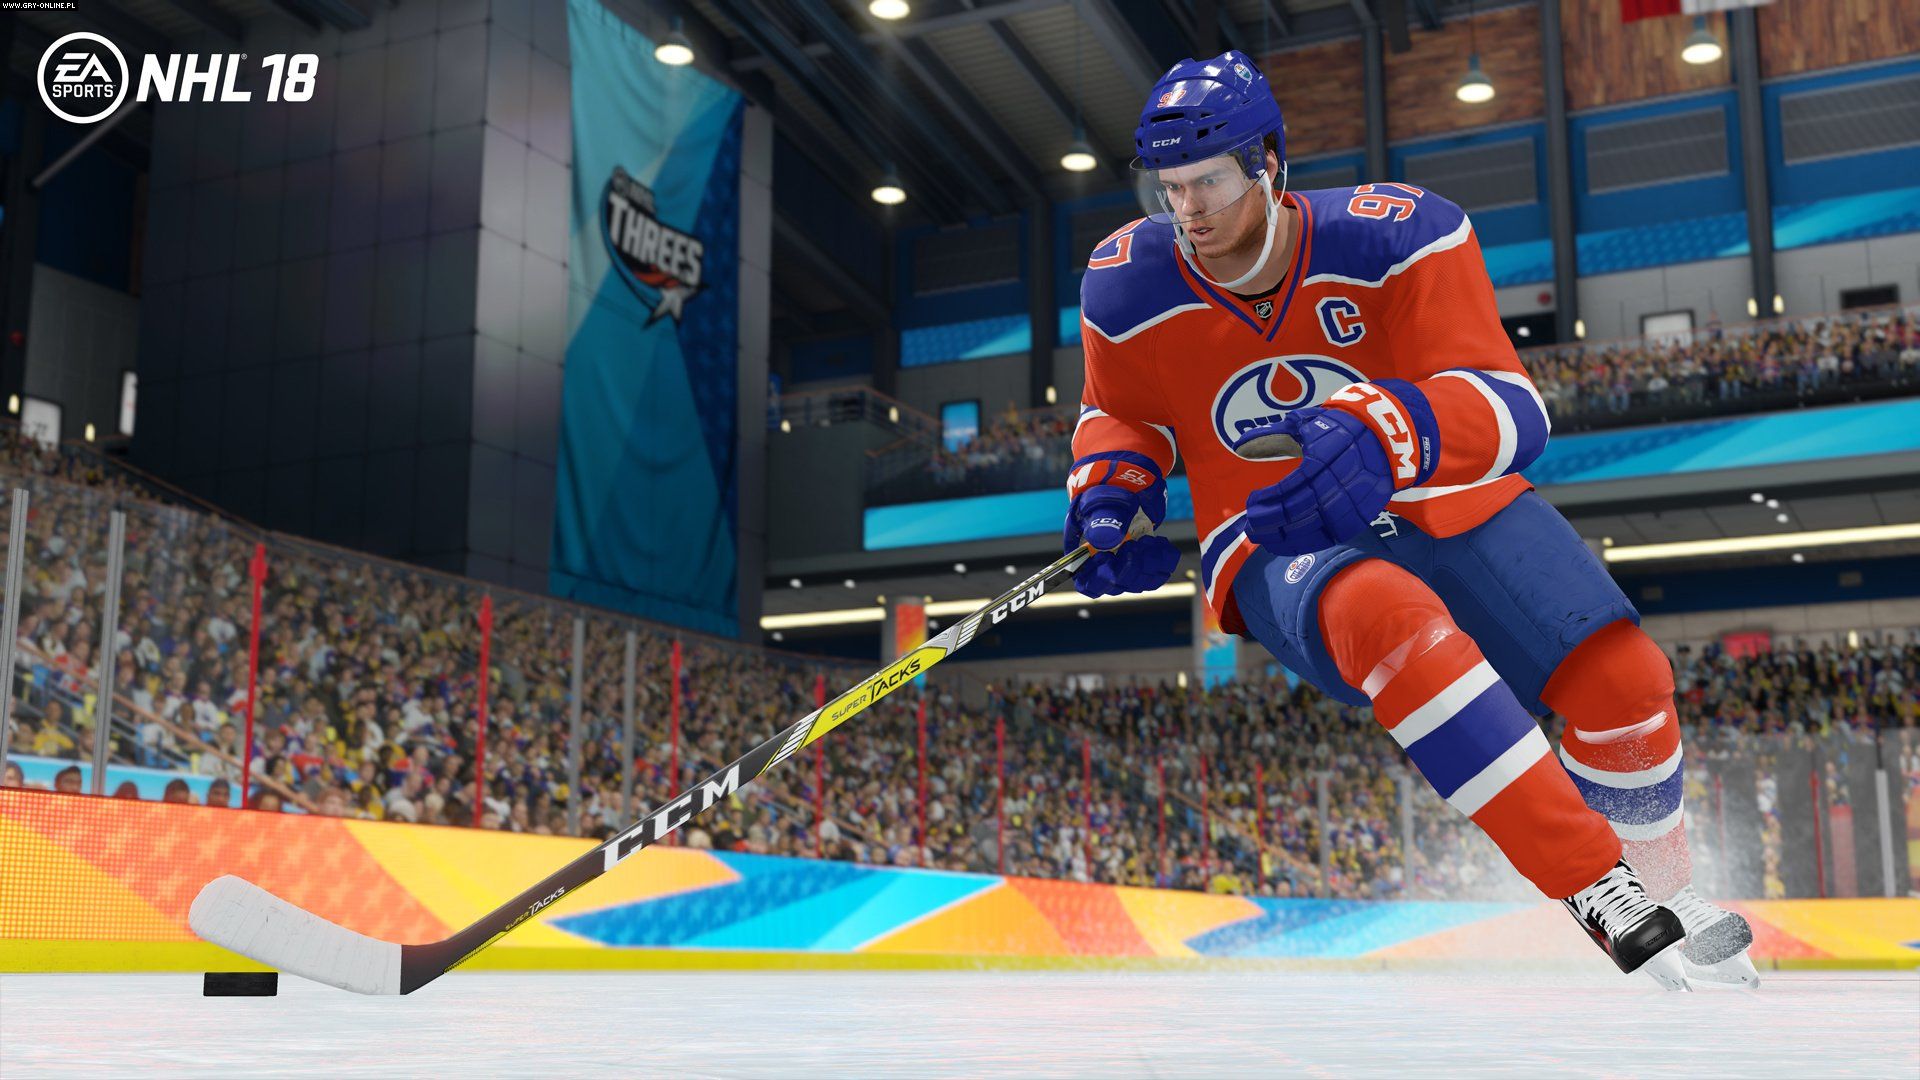 NHL 18 PS4, XONE Games Image 8/9, EA Sports, Electronic Arts Inc.